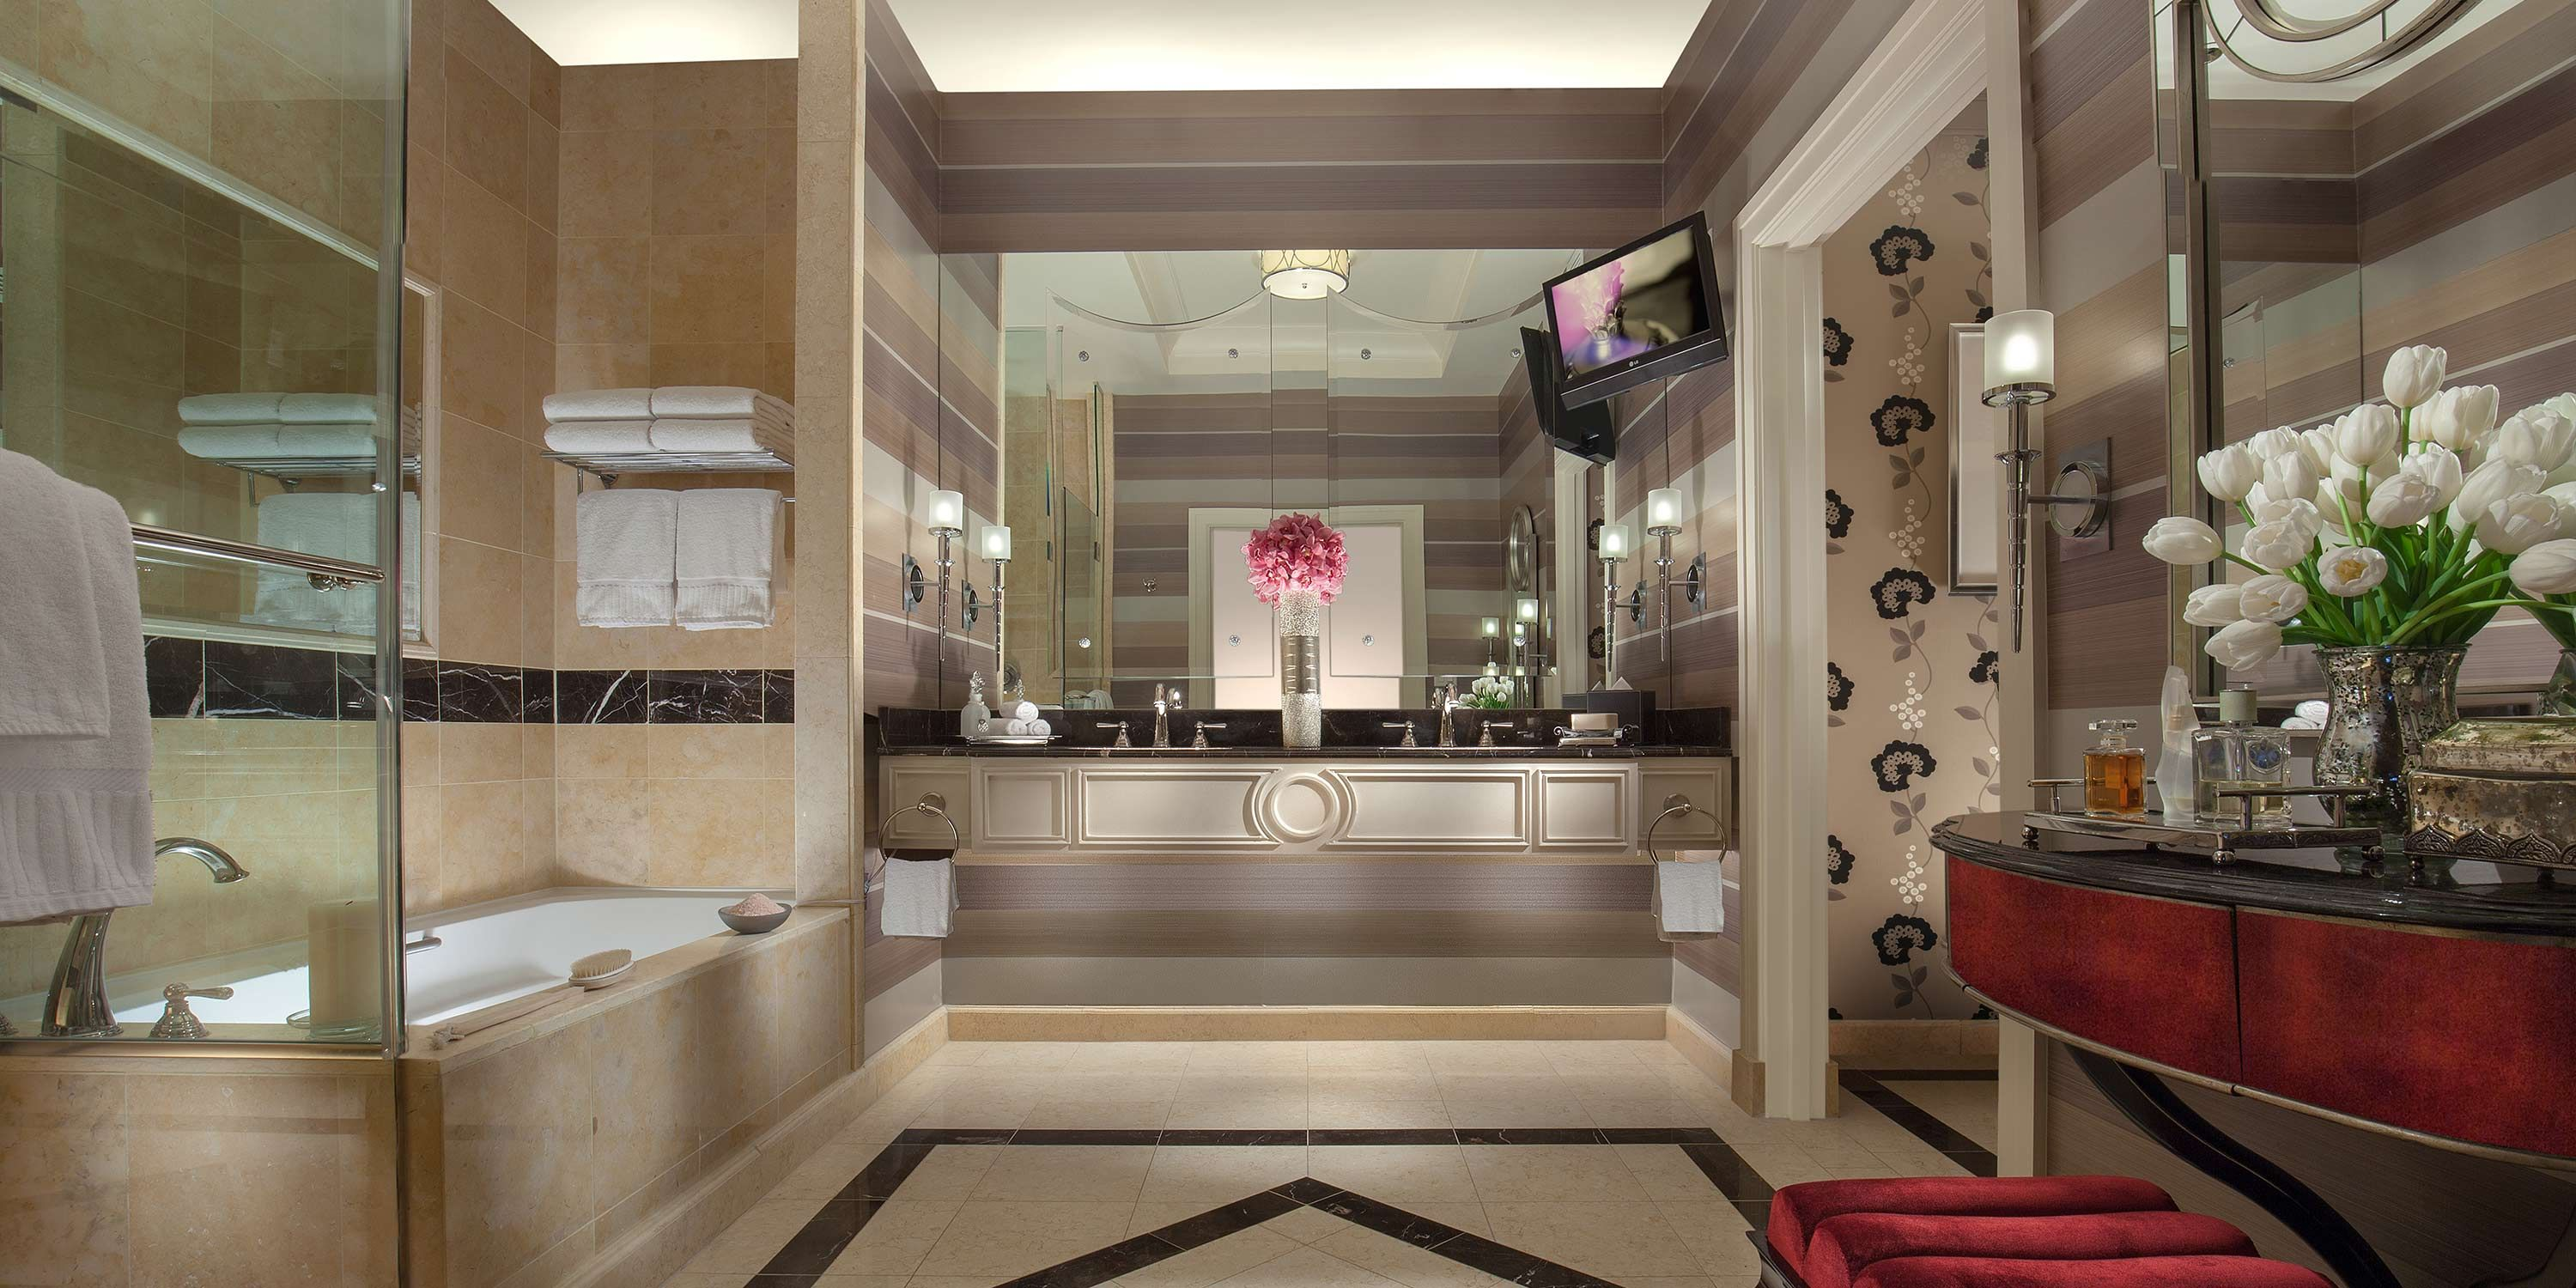 Las Vegas Bathroom Remodeling Image Review